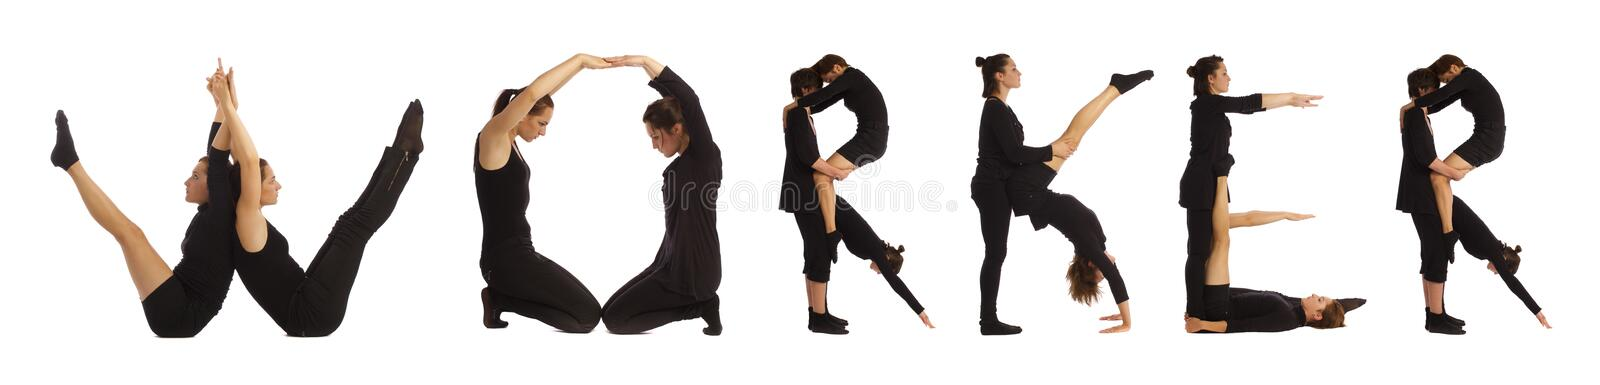 Black dressed people forming WORKER word. Over white background royalty free stock photography